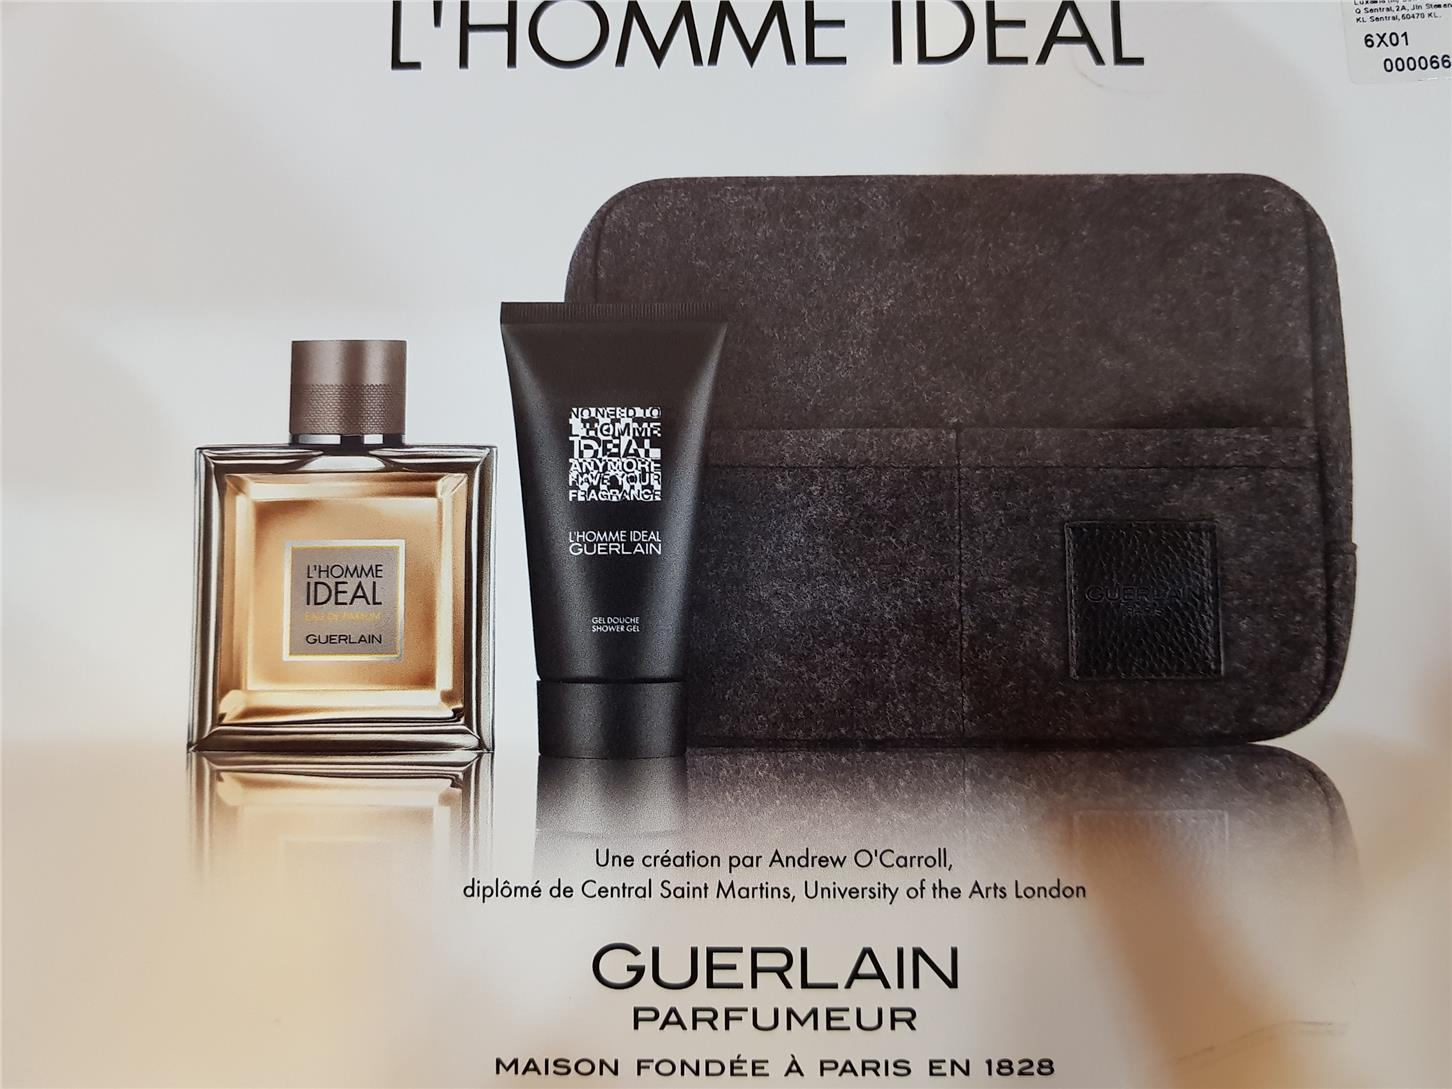 Original Lhomme Ideal Eau De Parfum End 4282020 515 Pm